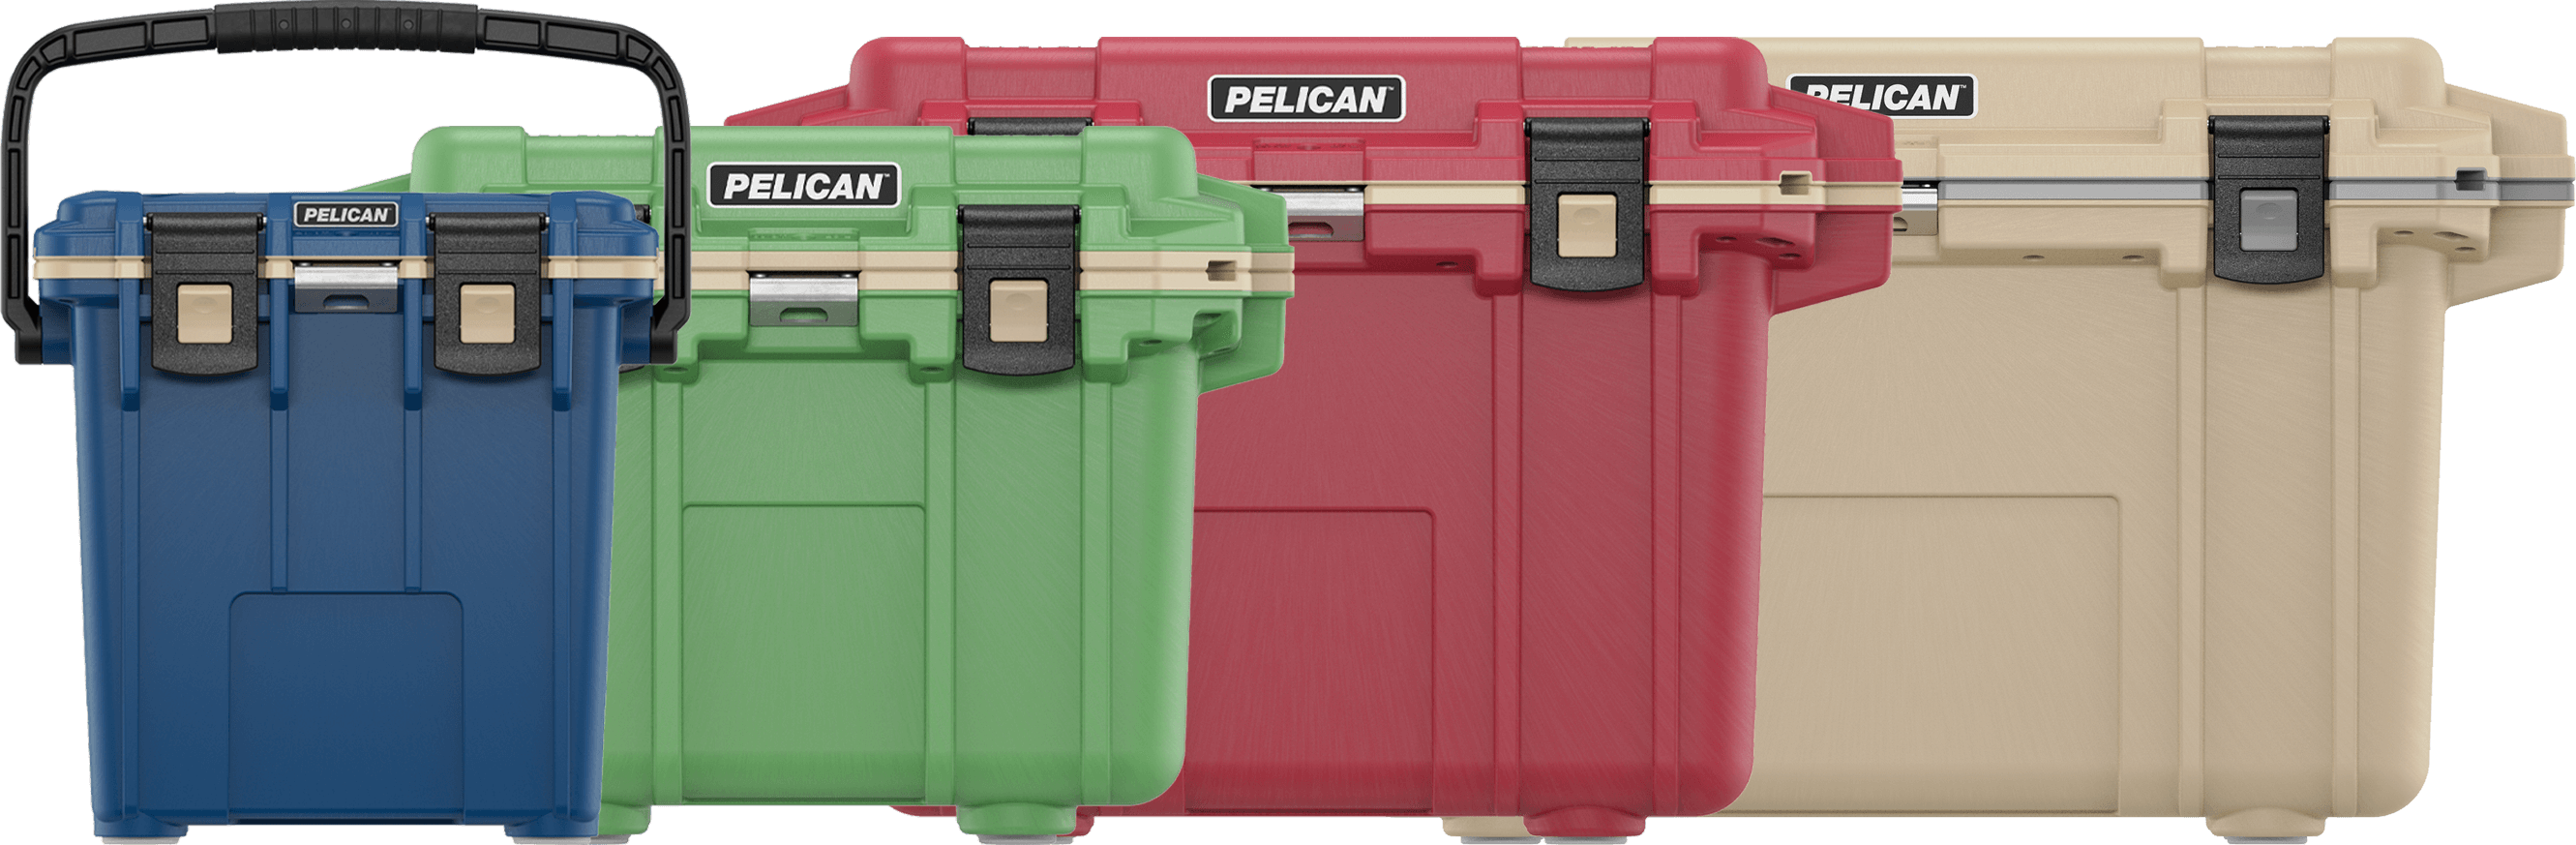 pelican overland colored coolers